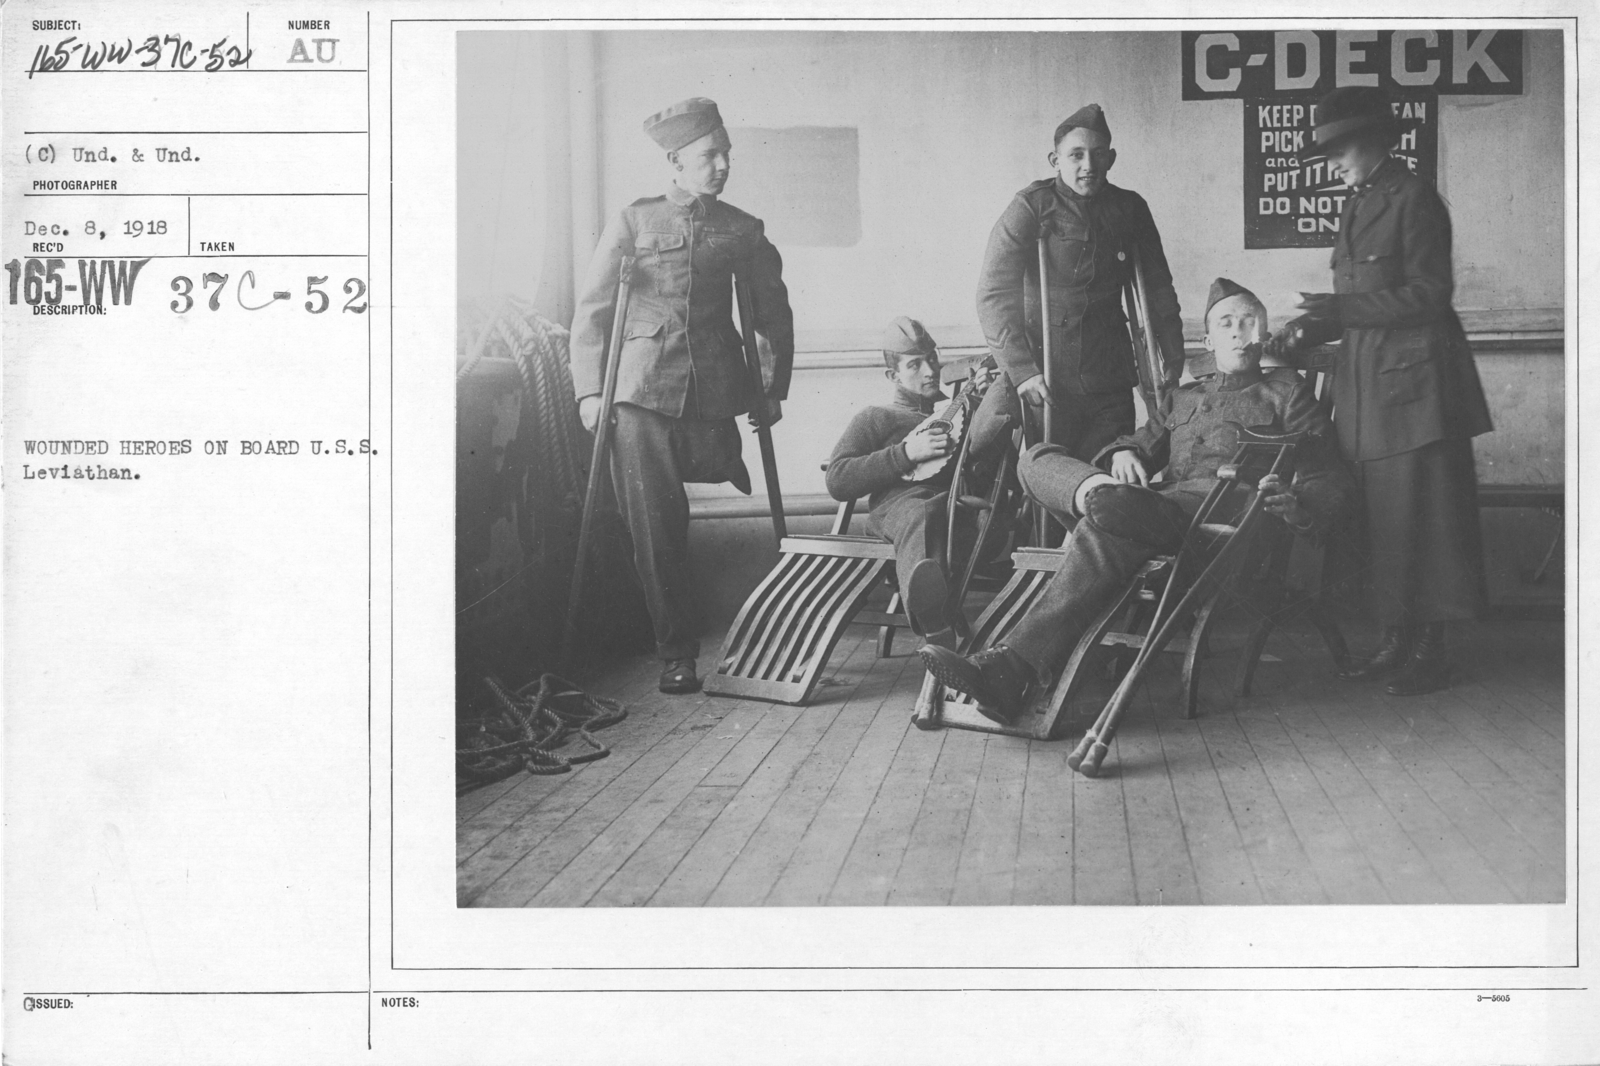 American Red Cross - Refreshments - Wounded heroes on board U.S.S. Leviathan